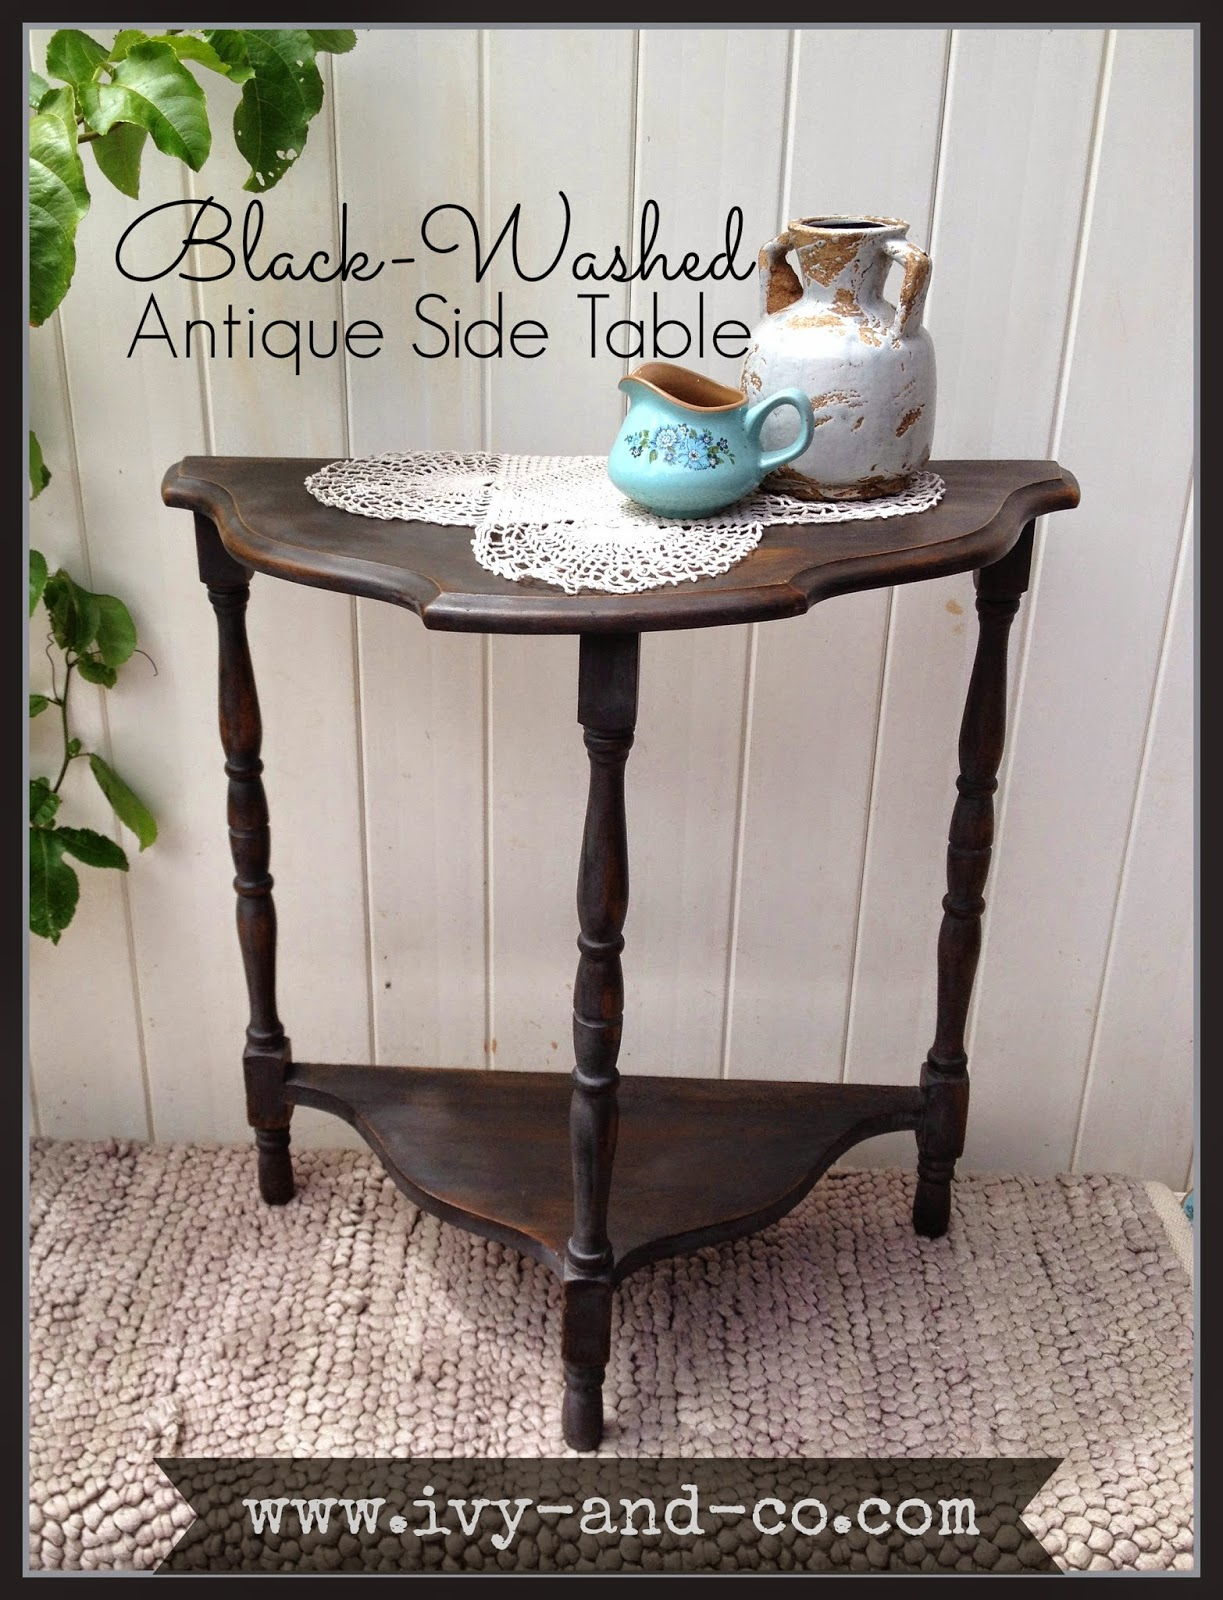 black wash antique side table vintage miss mustard seed typewriter 3 legs